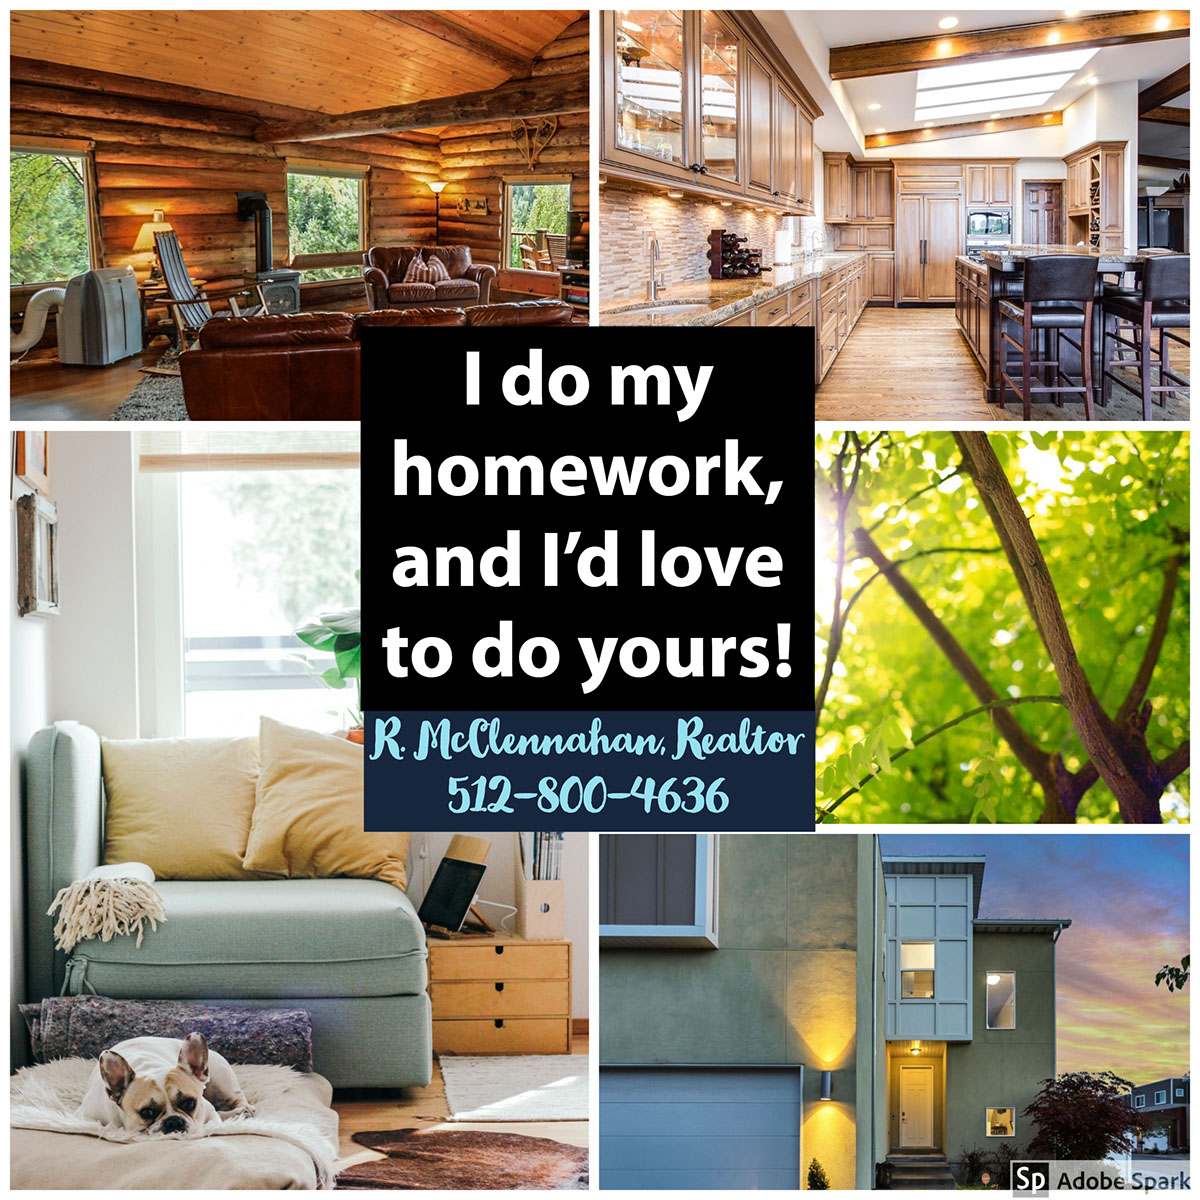 I do my homework, and I'd love to do yours! I do my homework, and I'd love to do yours! 